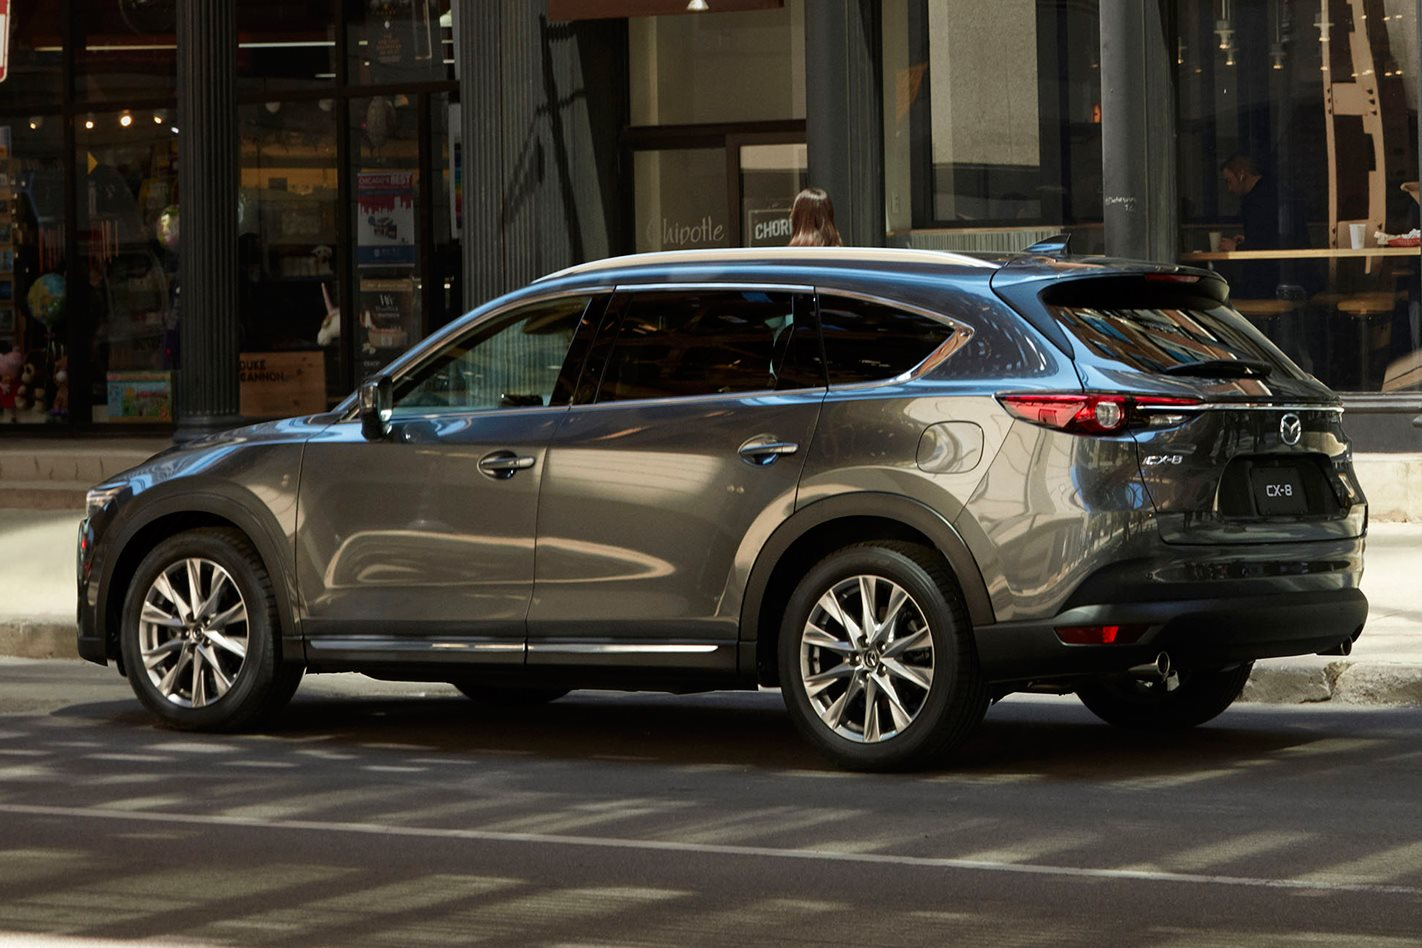 Mazda Cx 8 On Sale In Japan But What About Australia